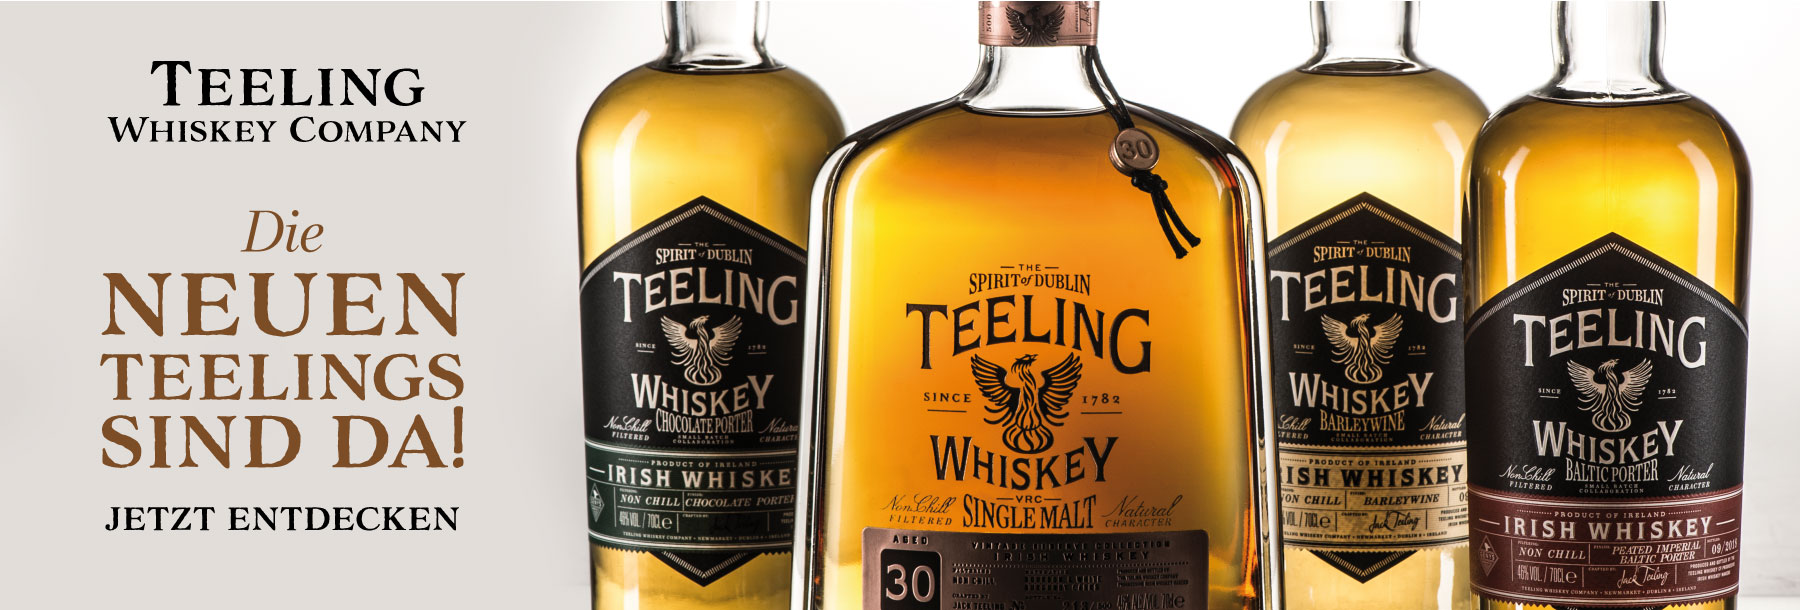 Teeling Whiskey Neuheiten 30yrs Beer Stout Porter